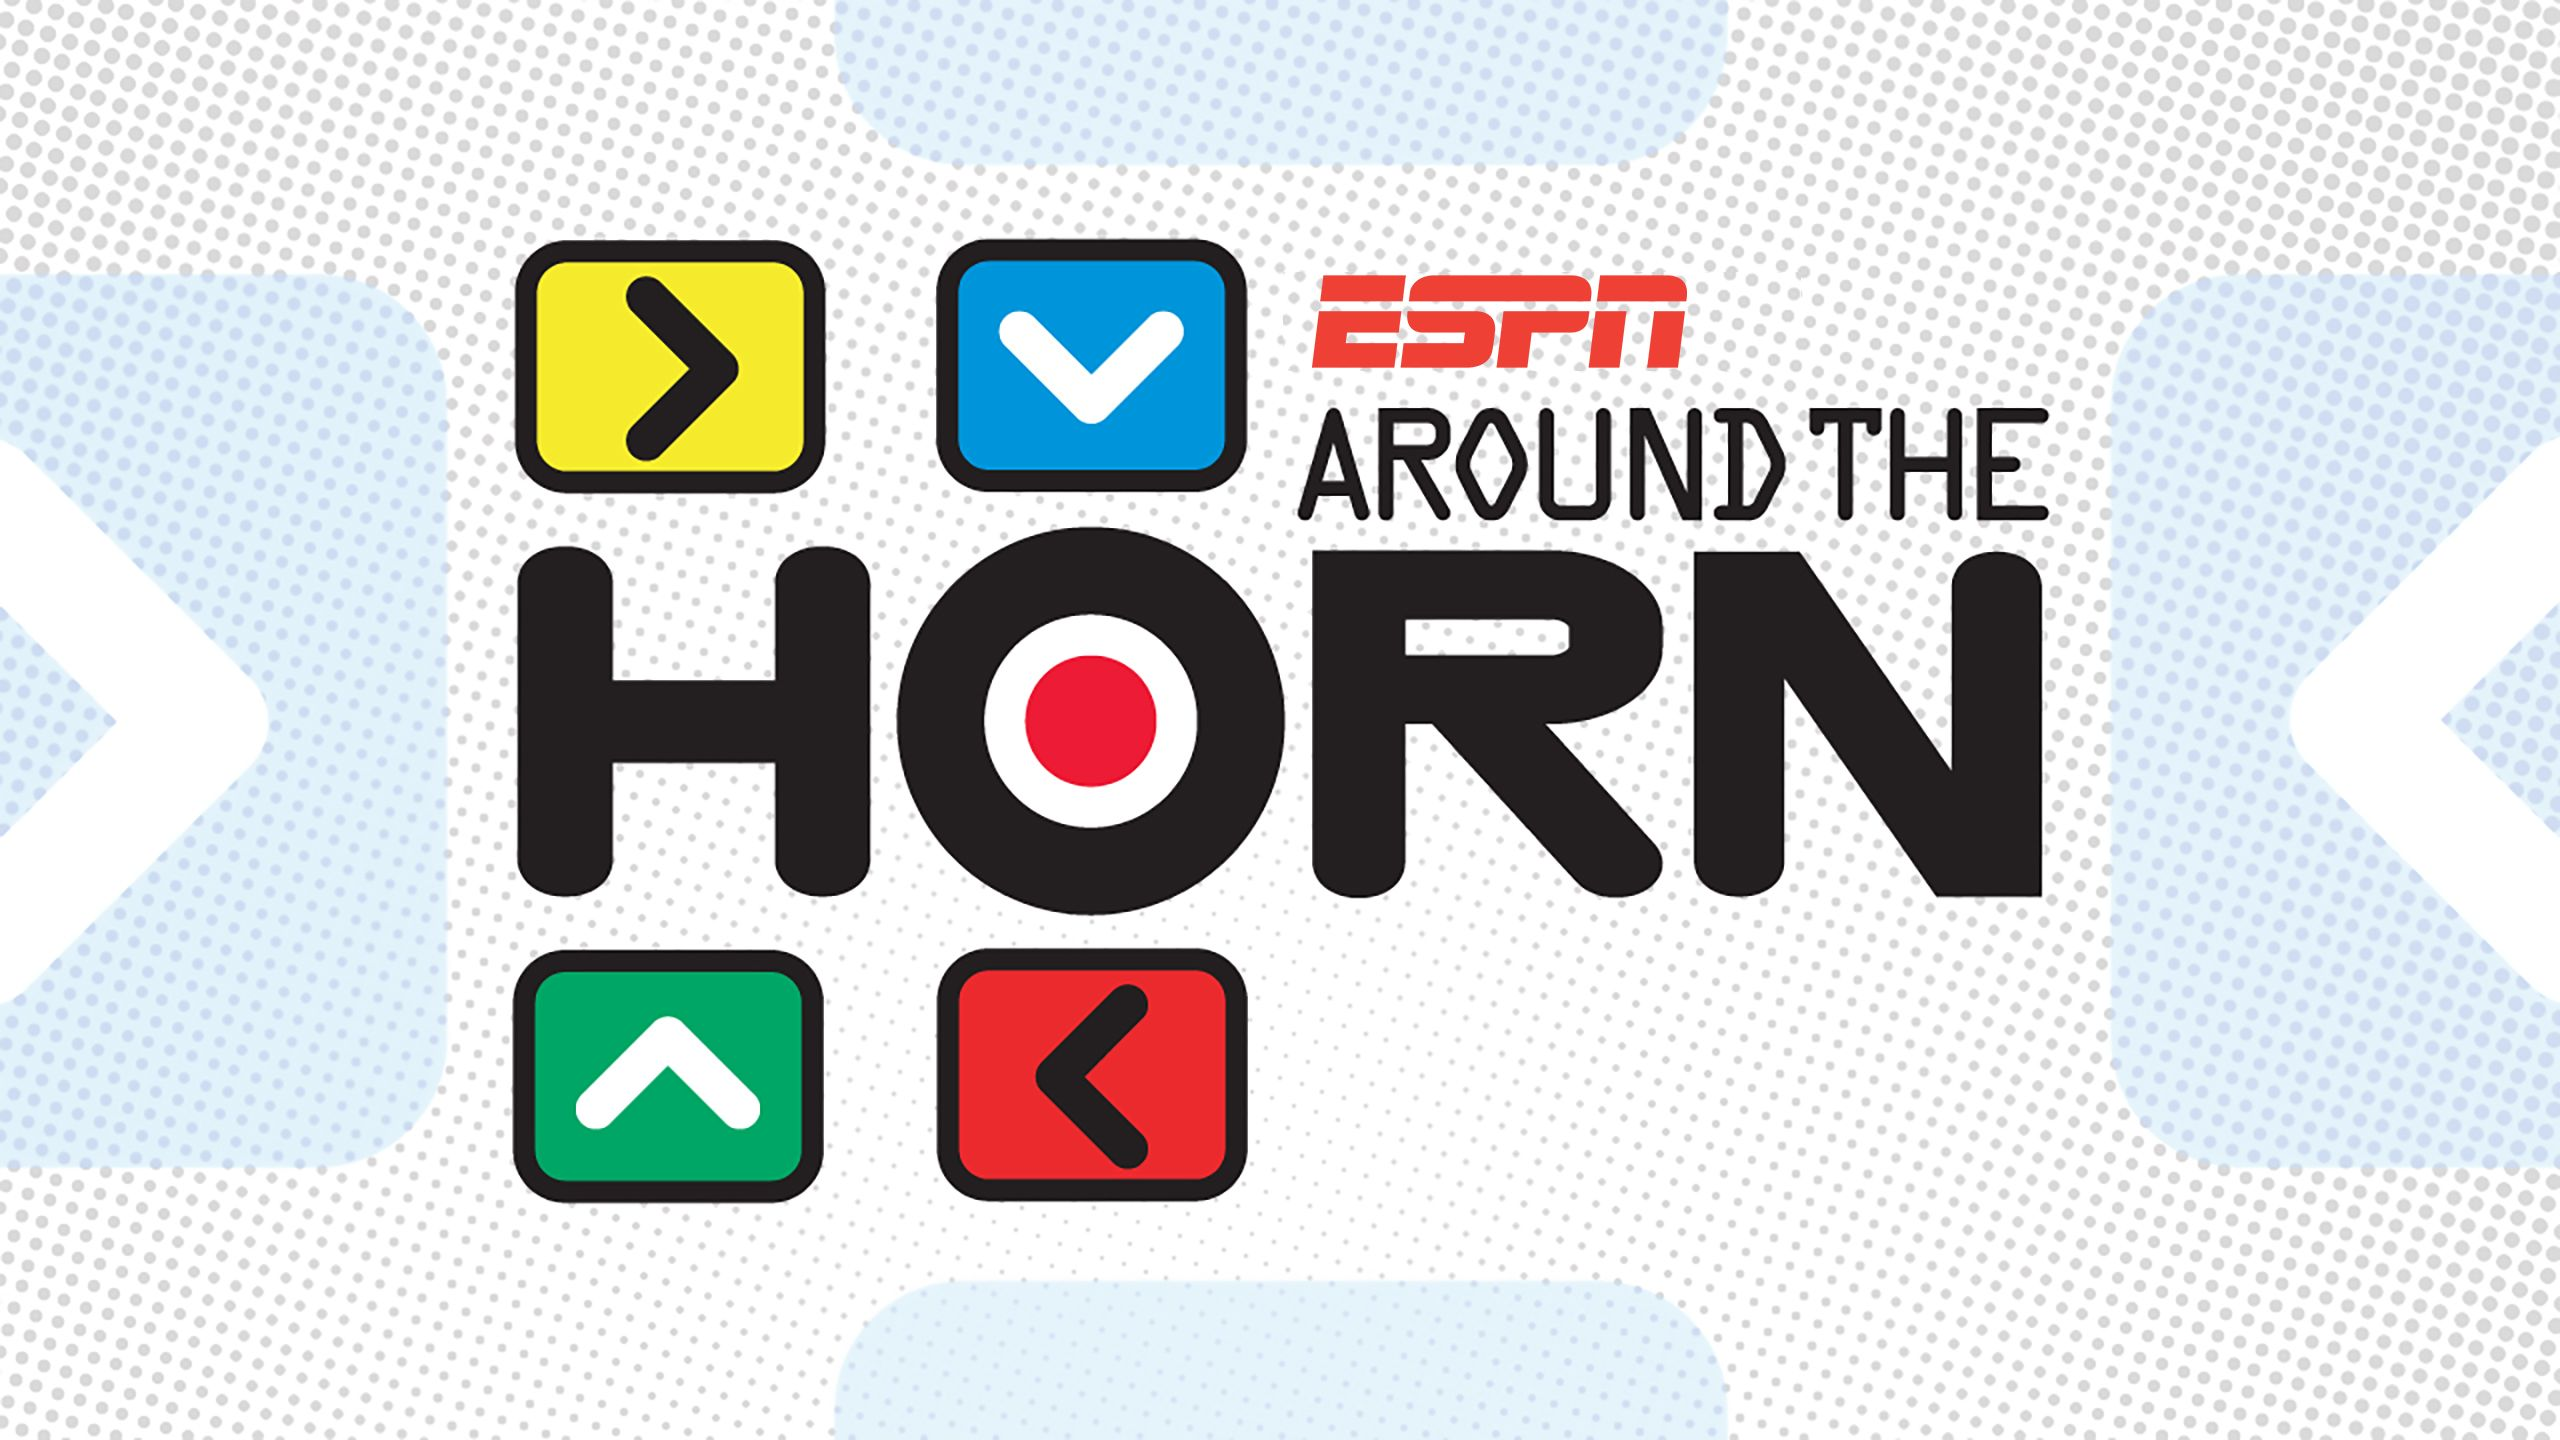 Tue, 4/24 - Around The Horn